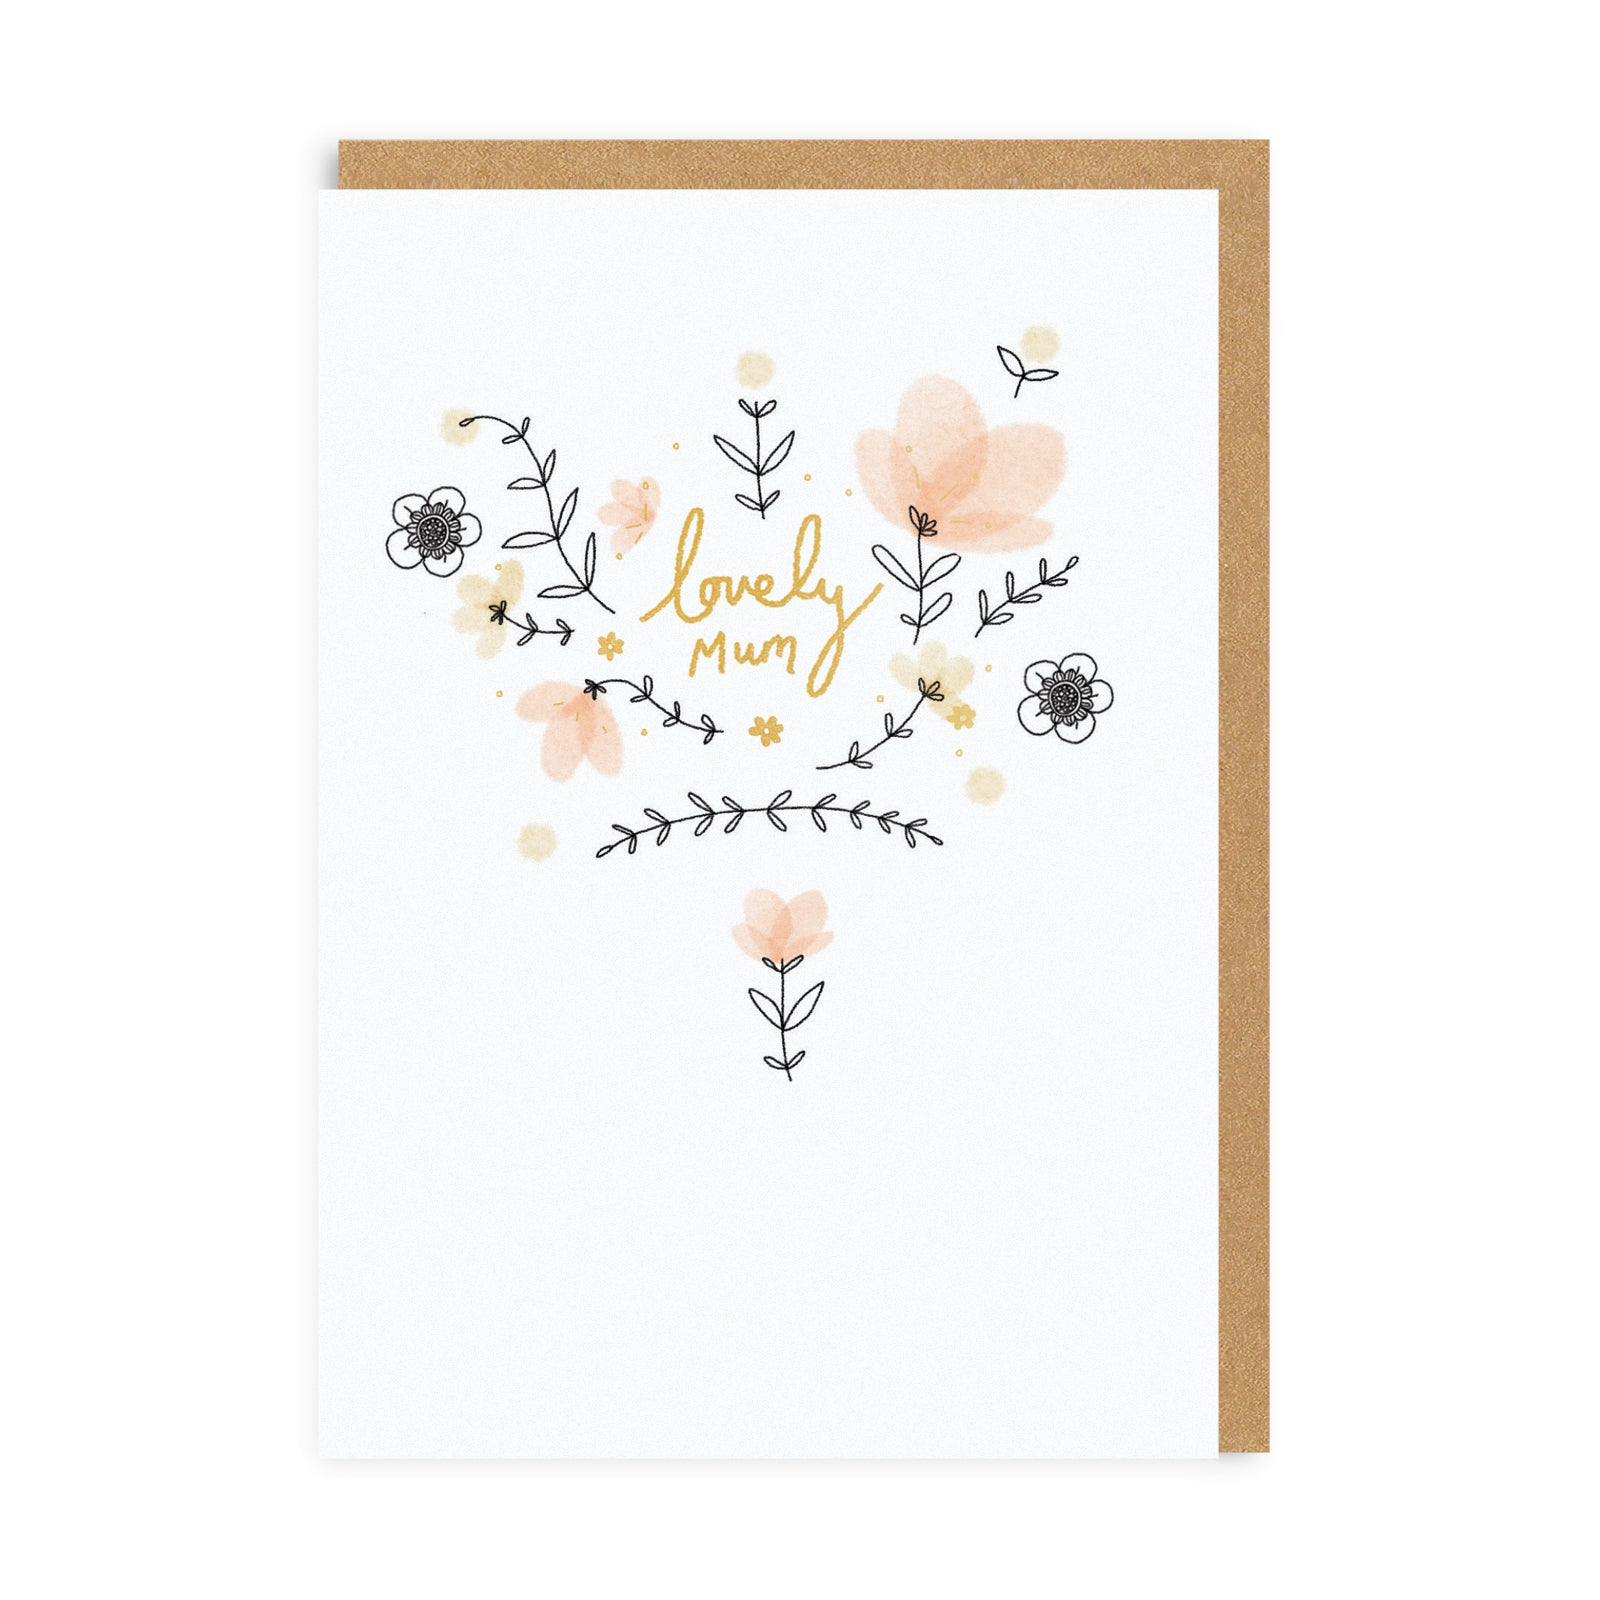 Lovely Mum Greeting Card